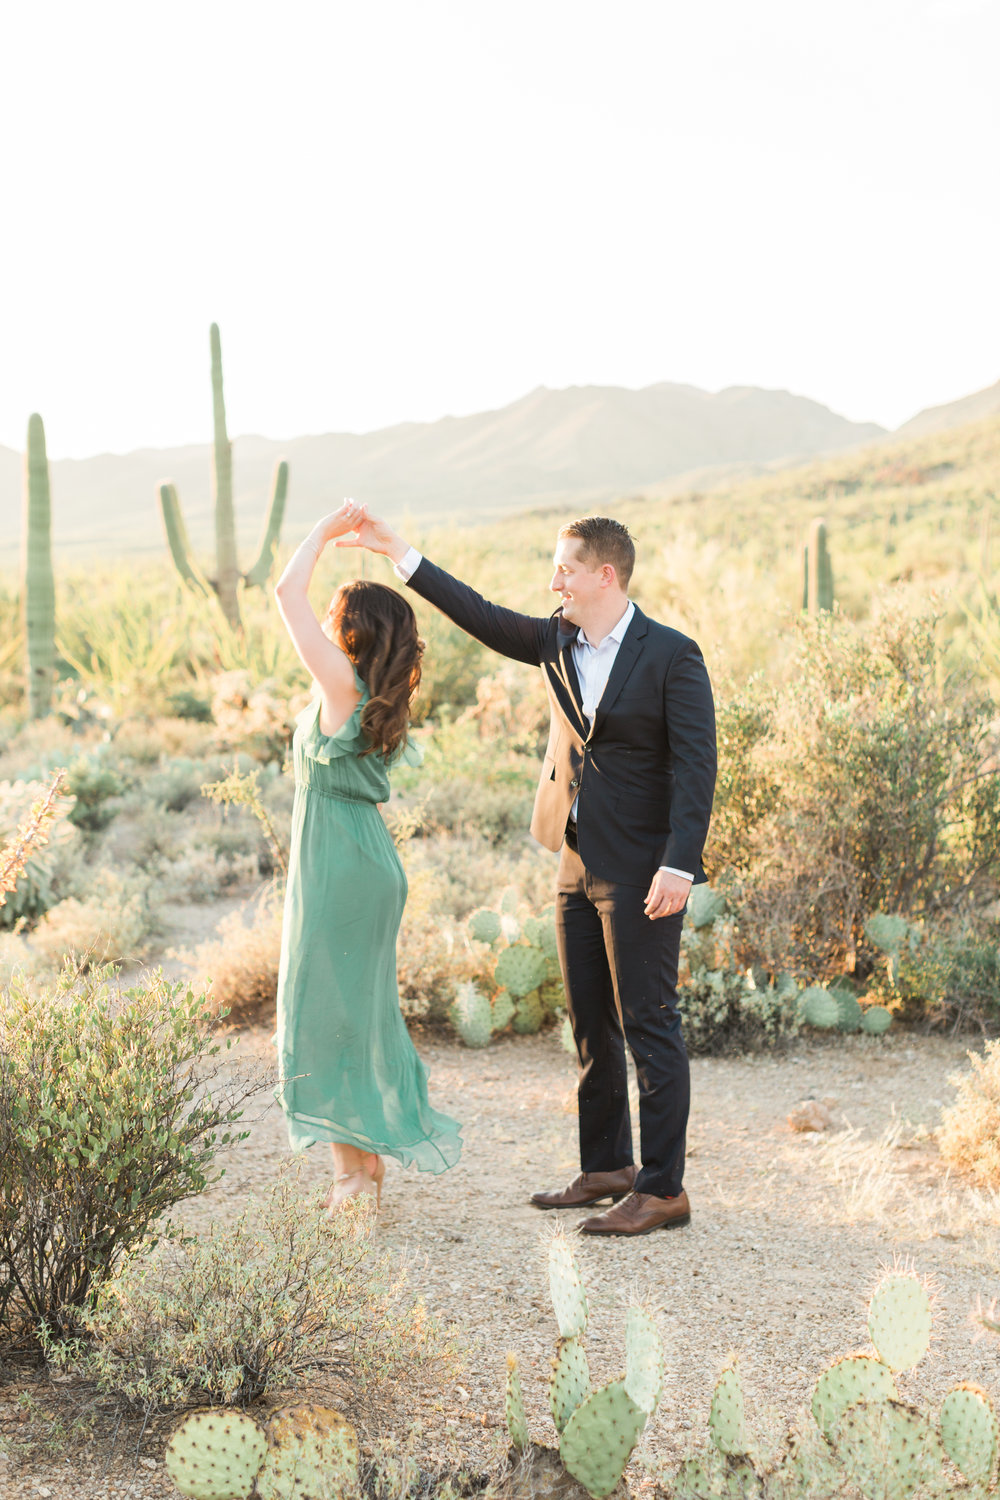 Cute couple dancing in the desert at their Tucson engagement session. Gorgeous desert light and cactus glowing in the background.